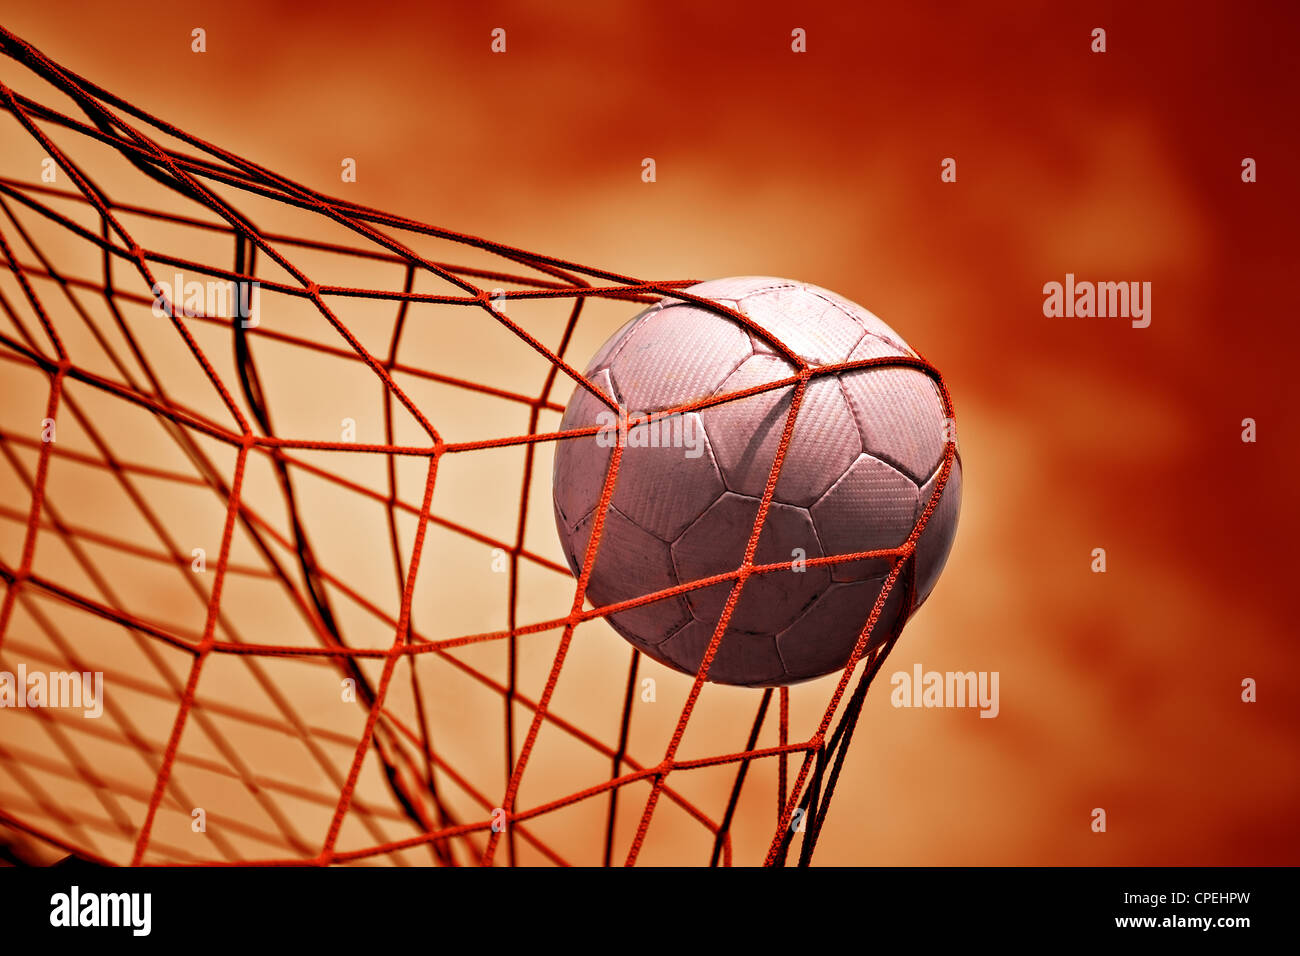 symbolic picture for goal with a soccer ball in net - Stock Image